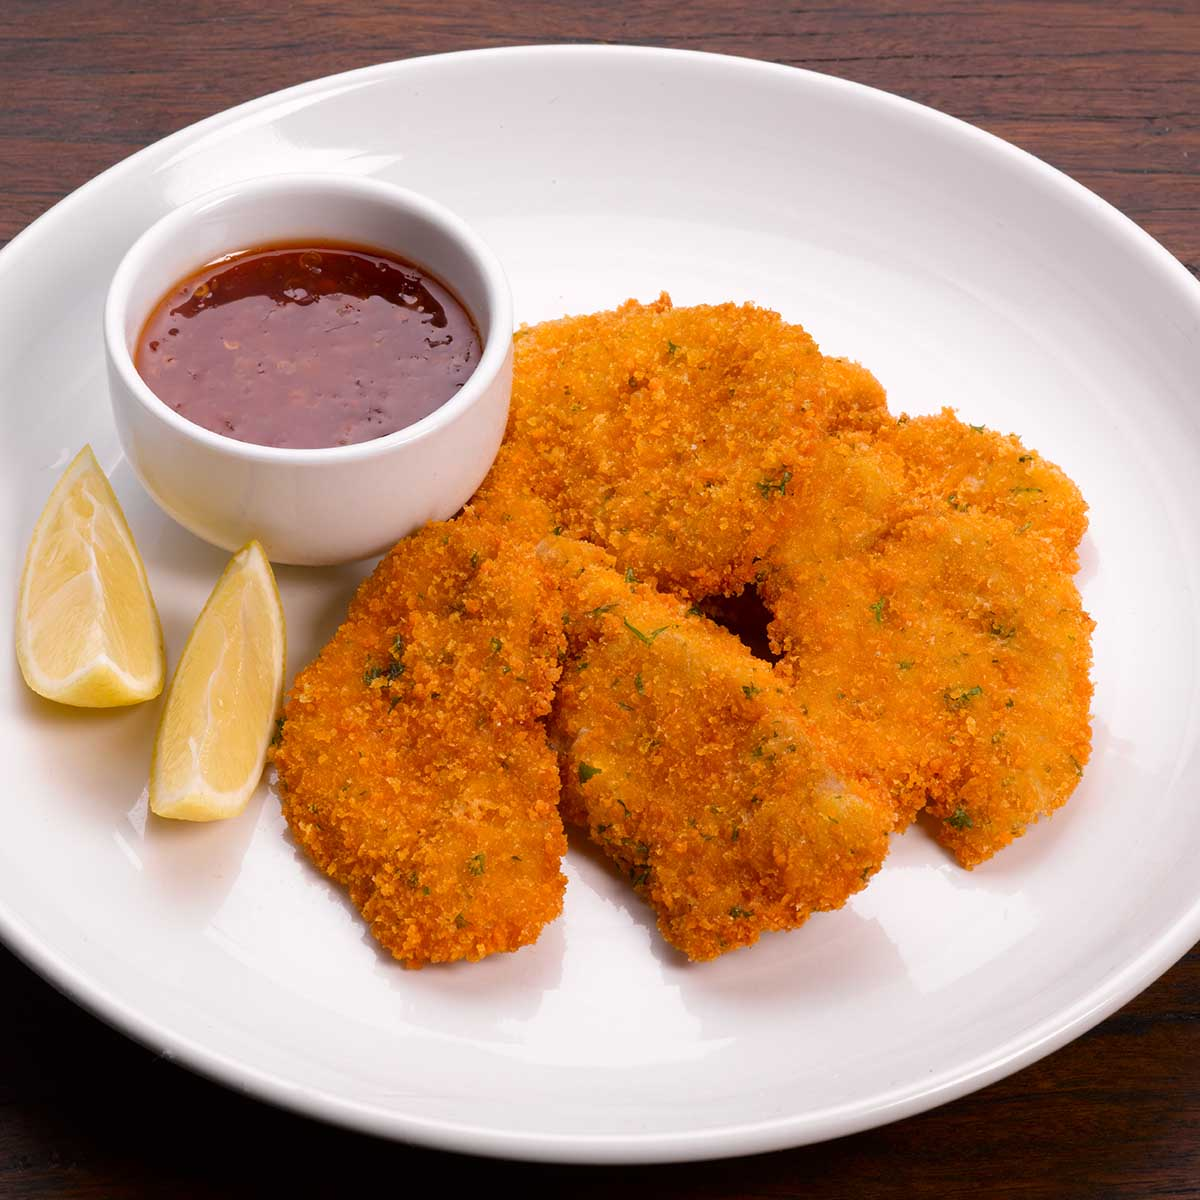 Pork crumbed nuggets